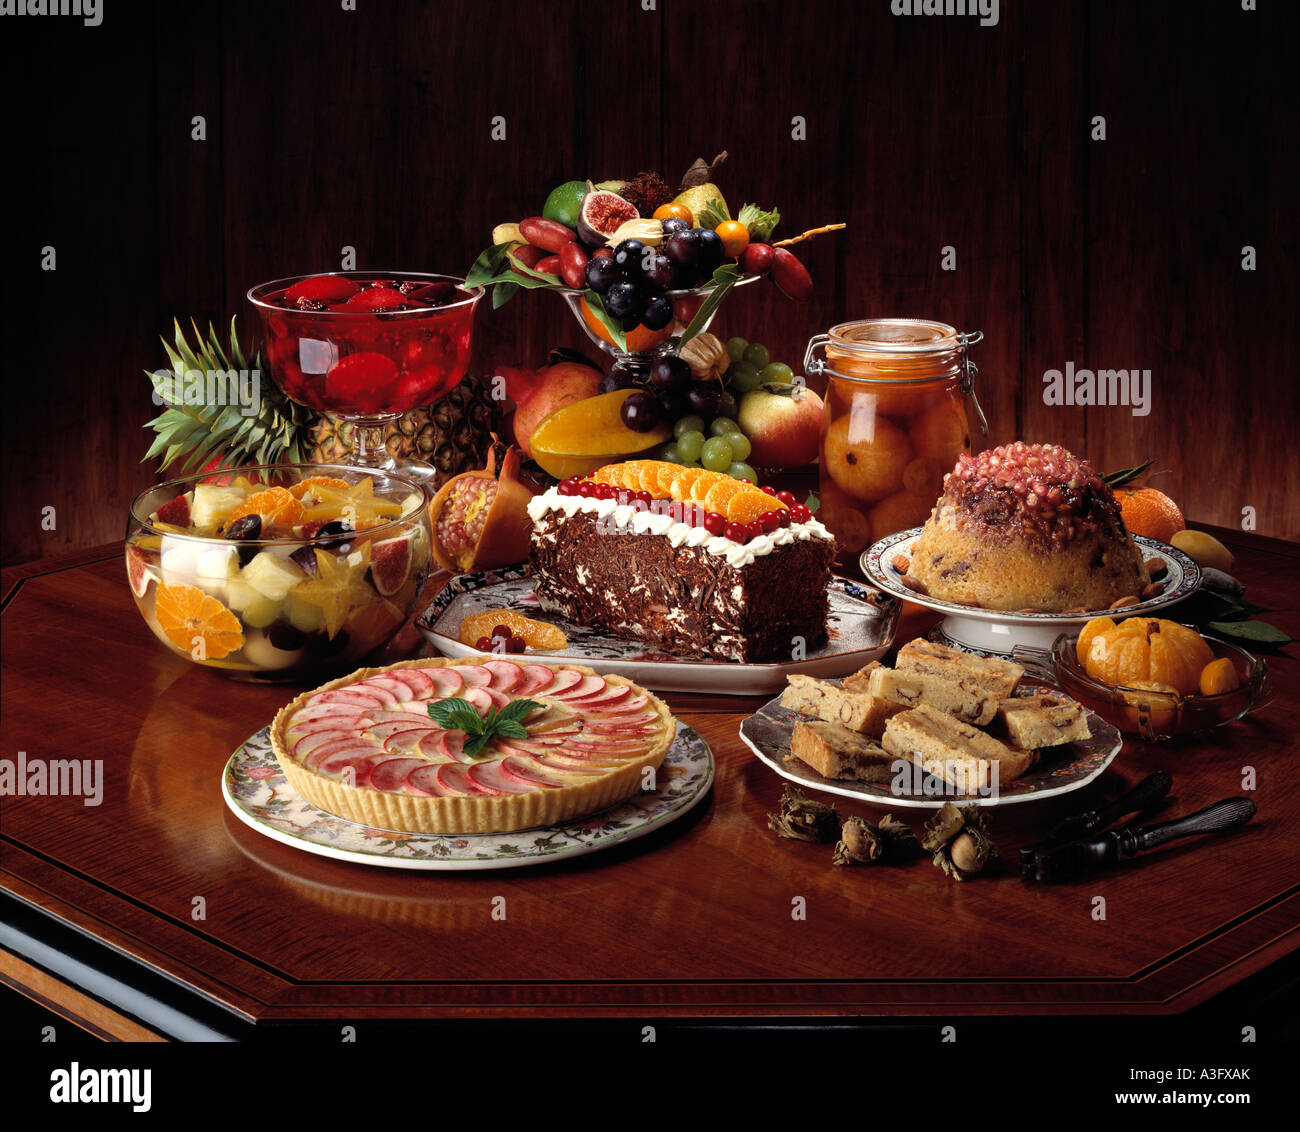 Table Full Of Desserts Tart And Fruits Editorial Food